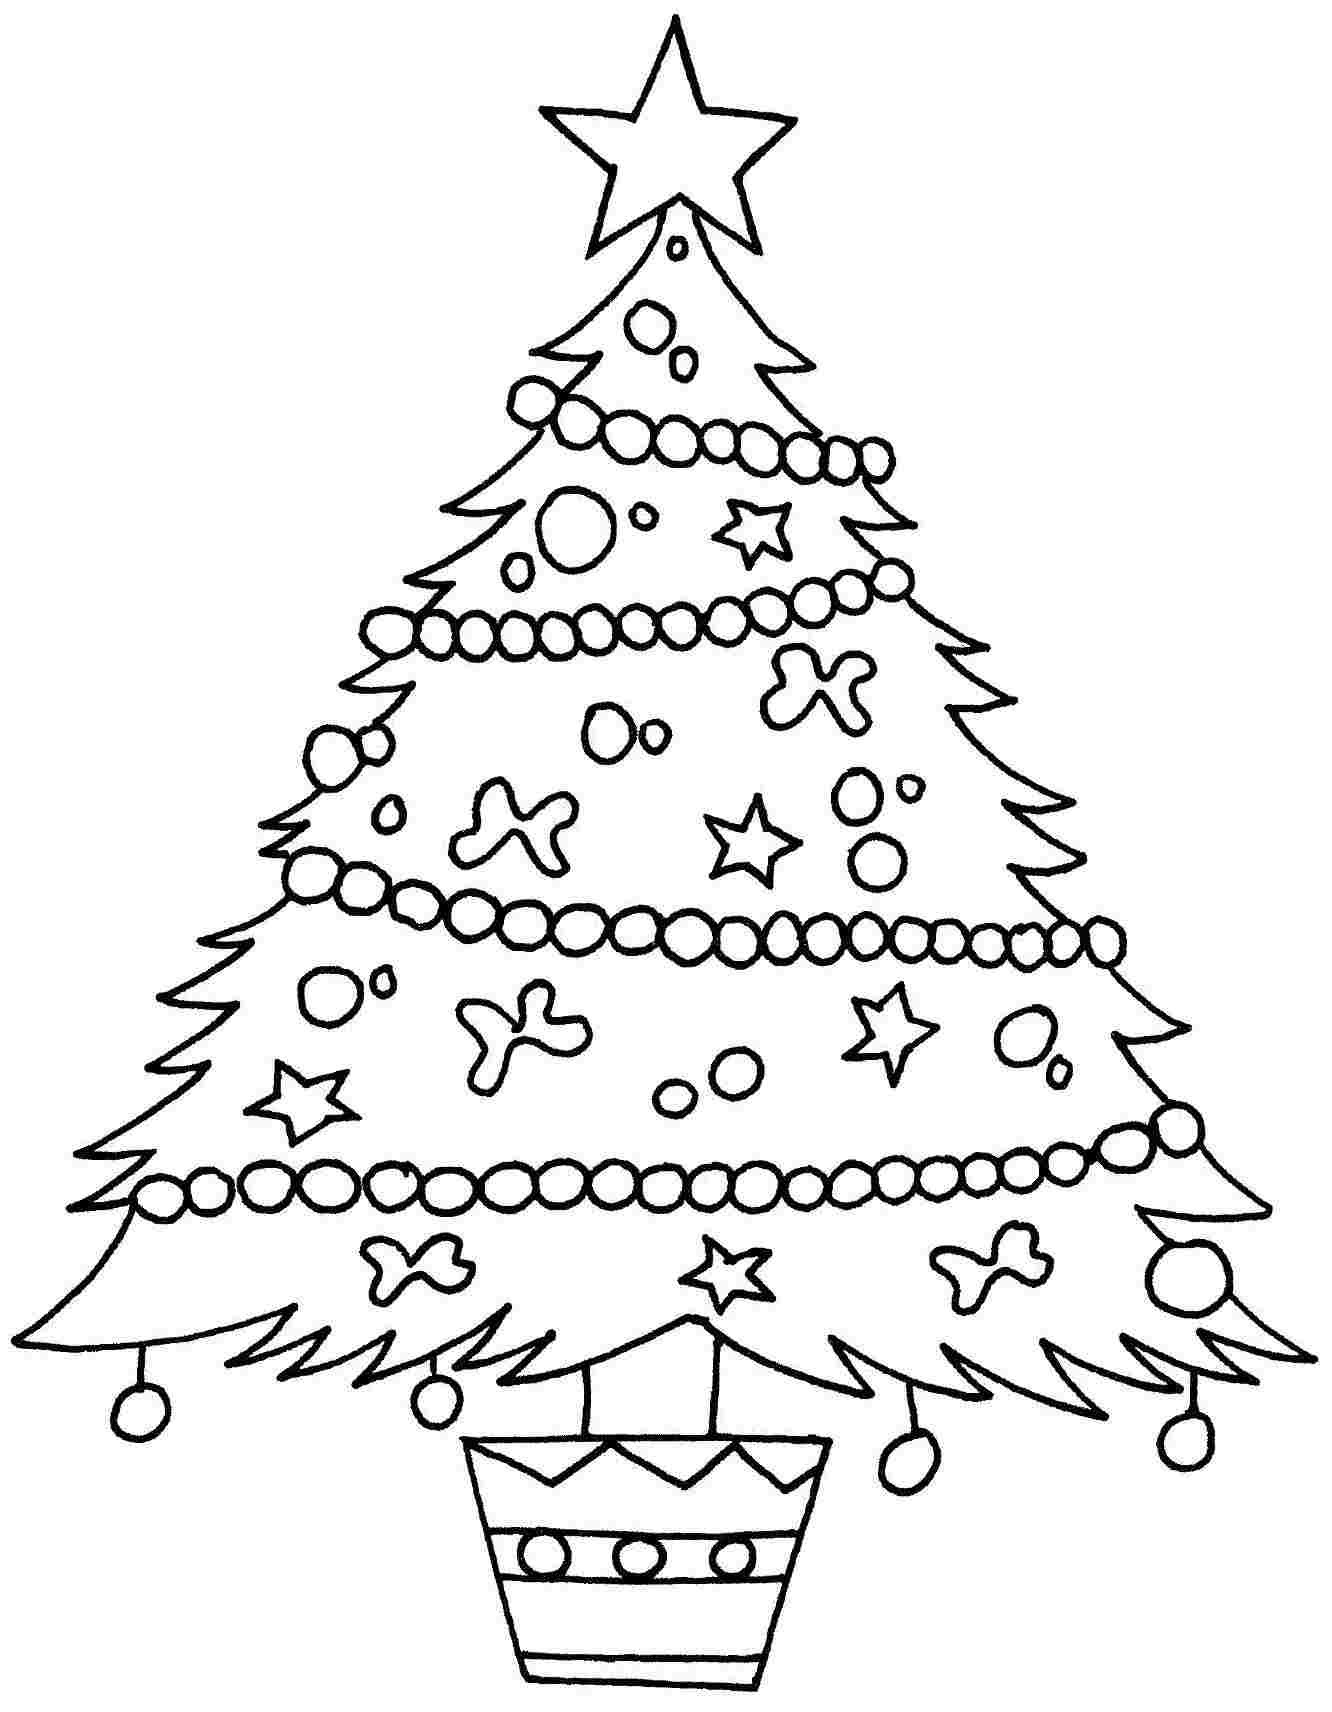 Evergreen Tree Drawing At Getdrawings